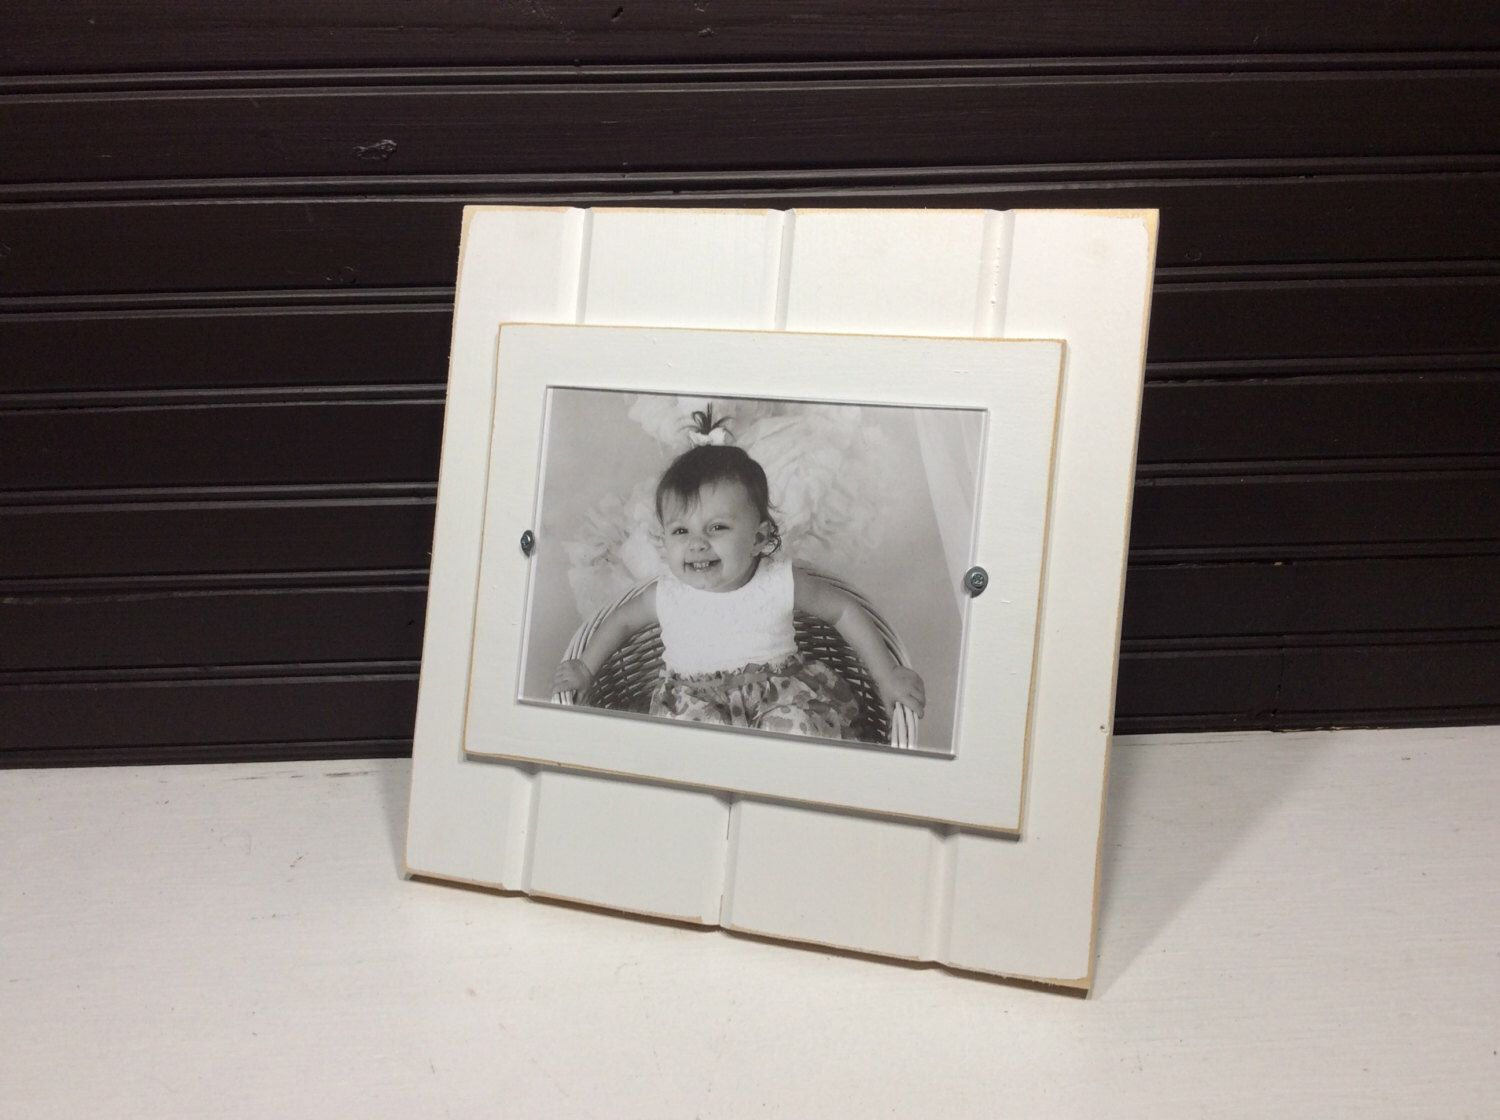 Stand Up Desktop Picture Frame Holds 5x7 By Kdcobbleshop On Etsy Https Www Etsy Com Listing 482563358 Stand Up Desktop Picture Frames Frame Desktop Pictures